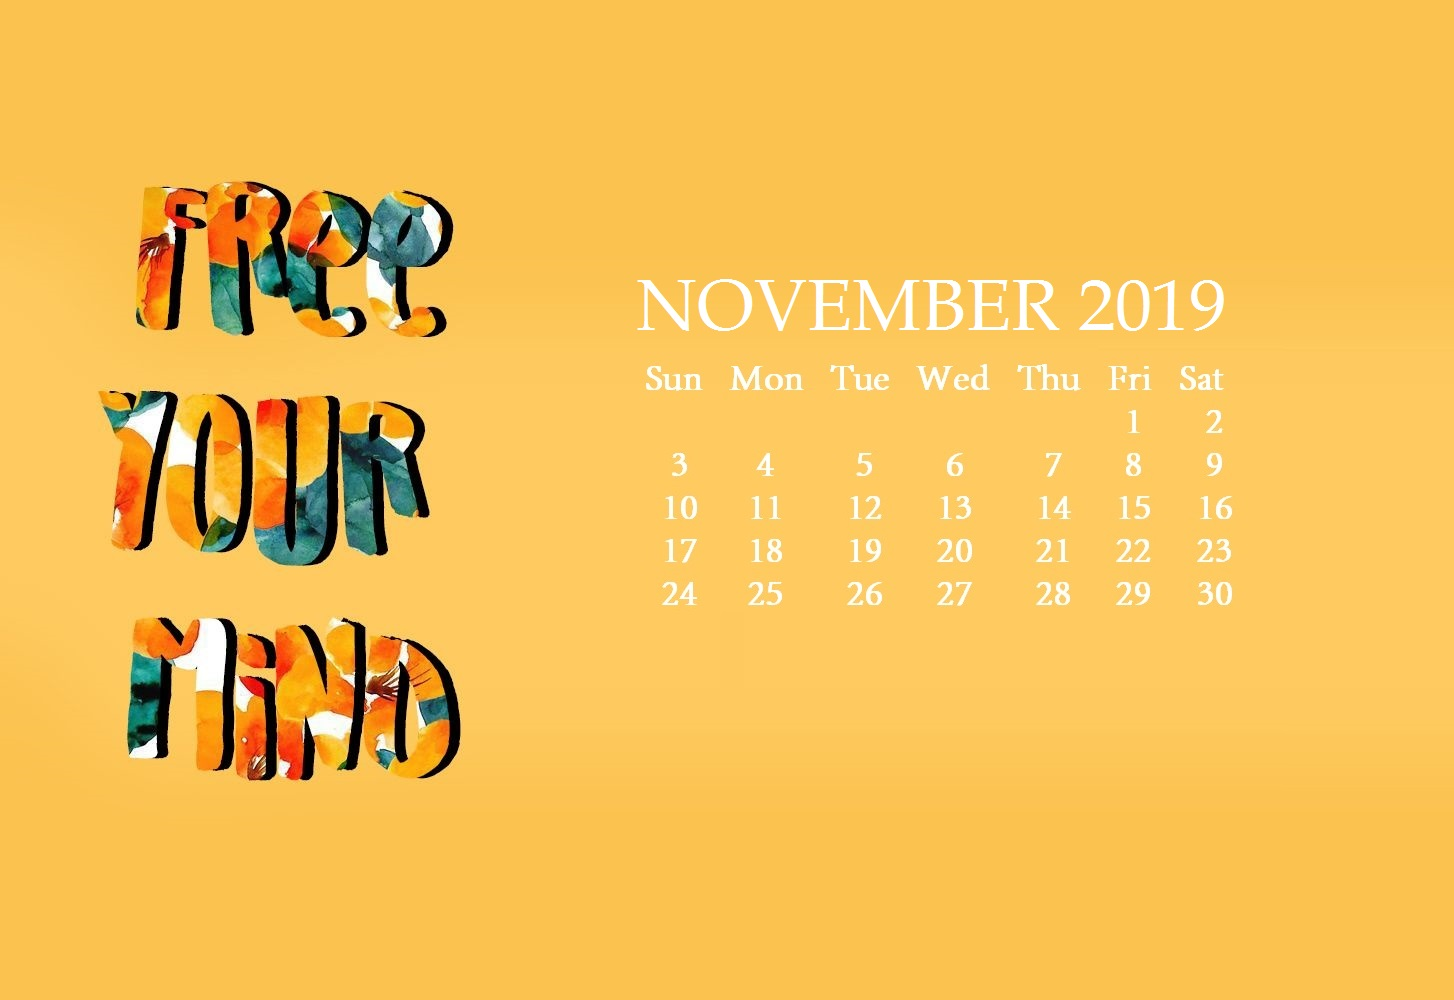 November 2019 Cute Background Calendar